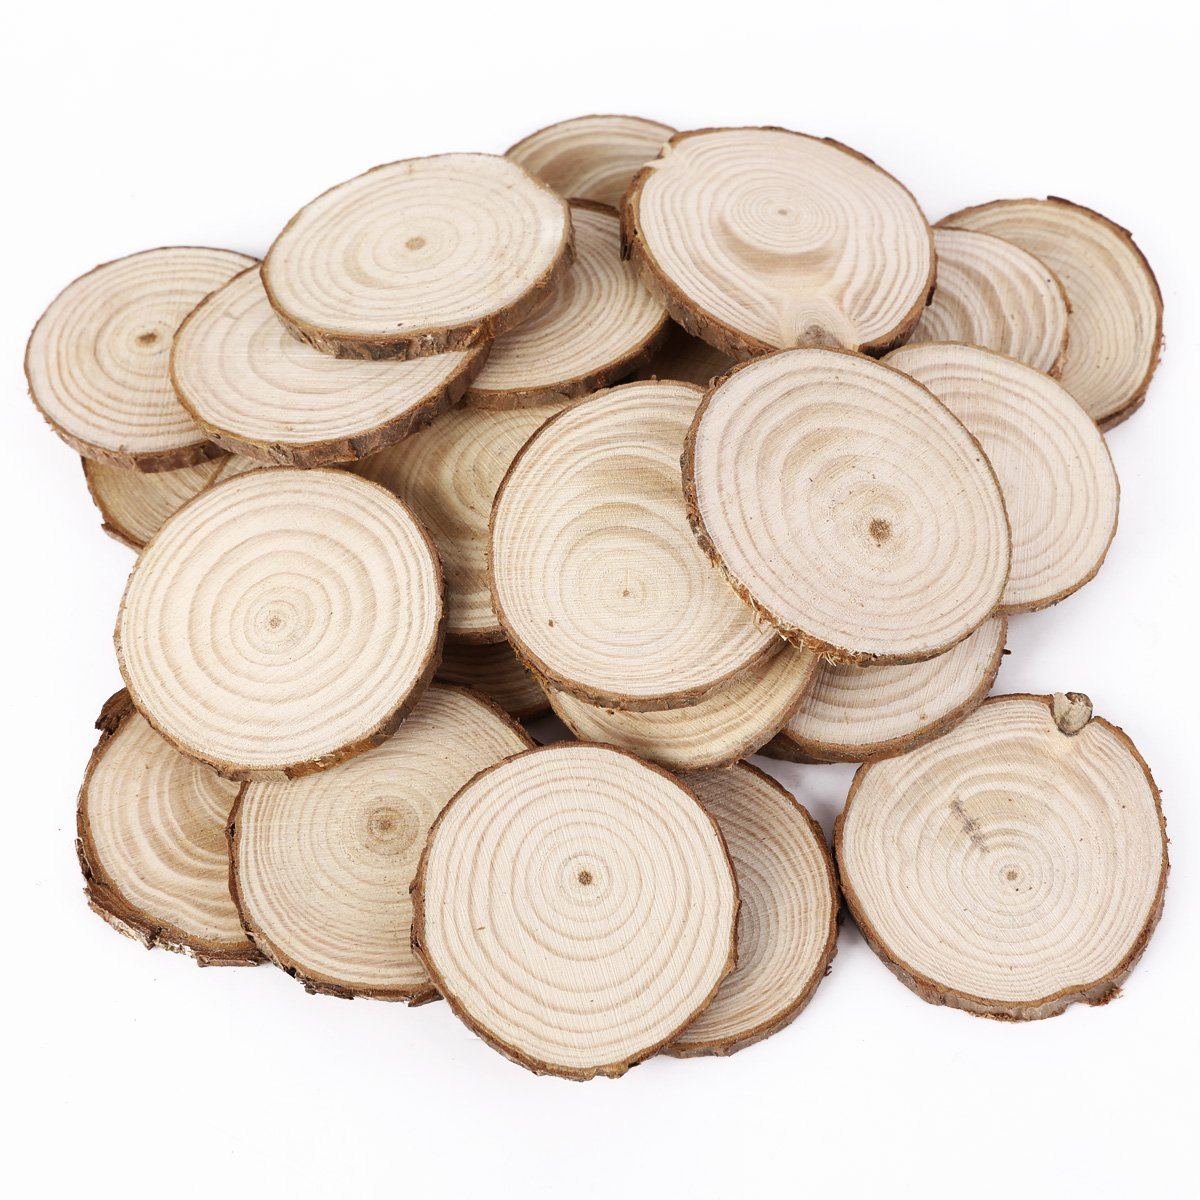 25PCS 5CM Wooden Wood Log Slices Discs Natural Tree Bark Table ...